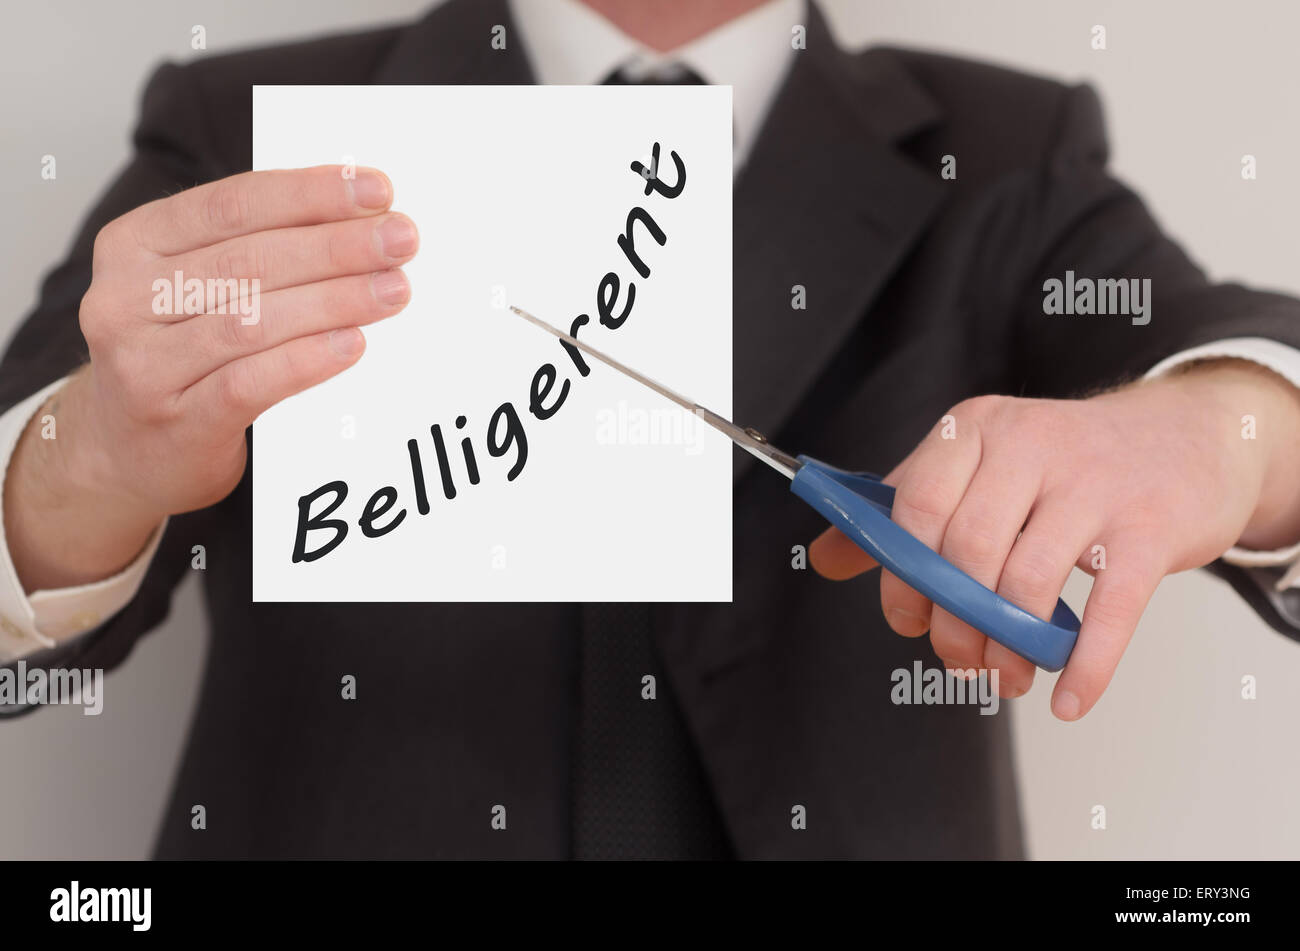 Belligerent, man in suit cutting text on paper with scissors - Stock Image